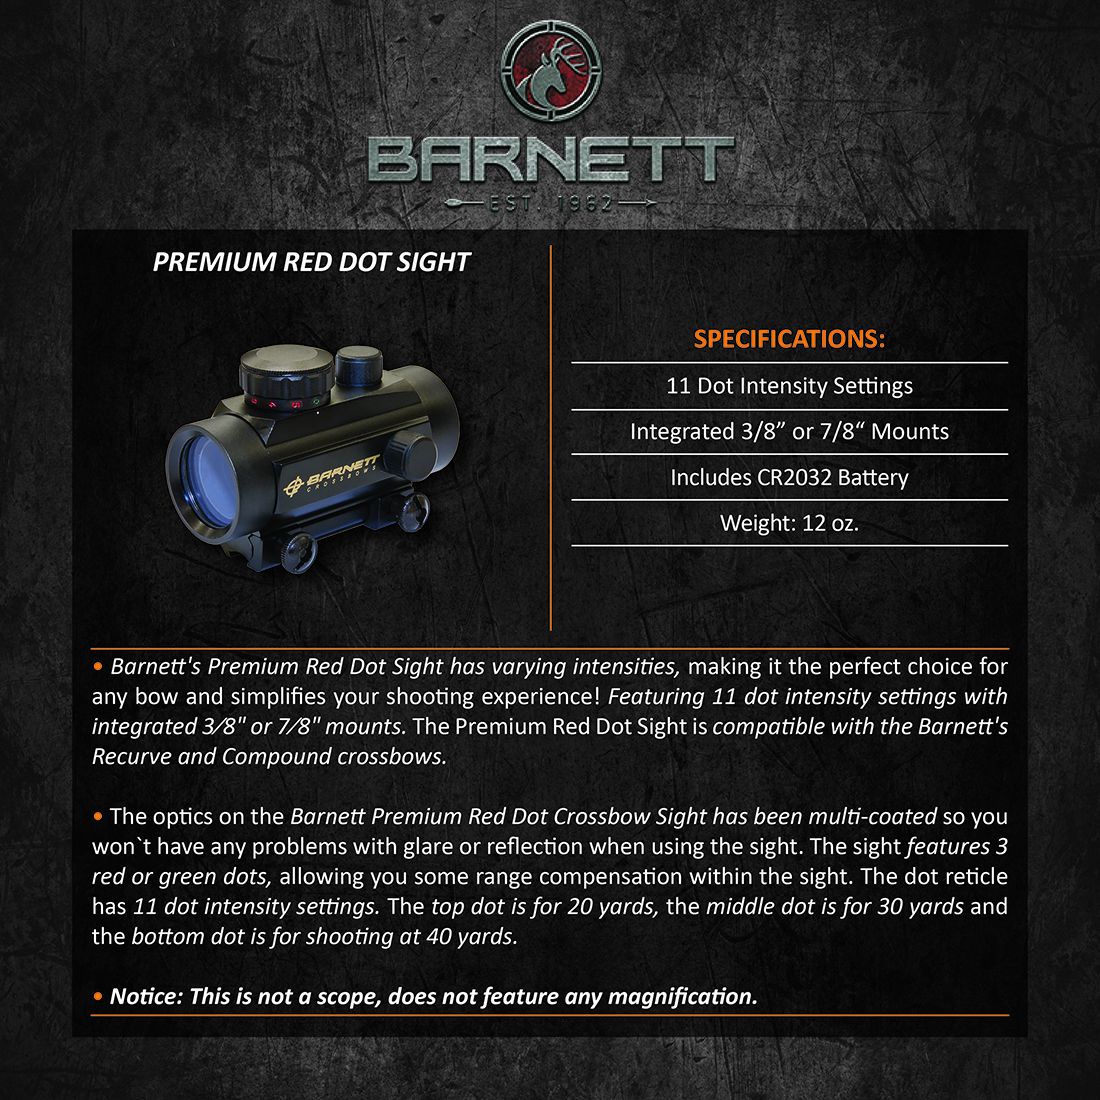 Barnett Premium Red Dot Sight Product Description